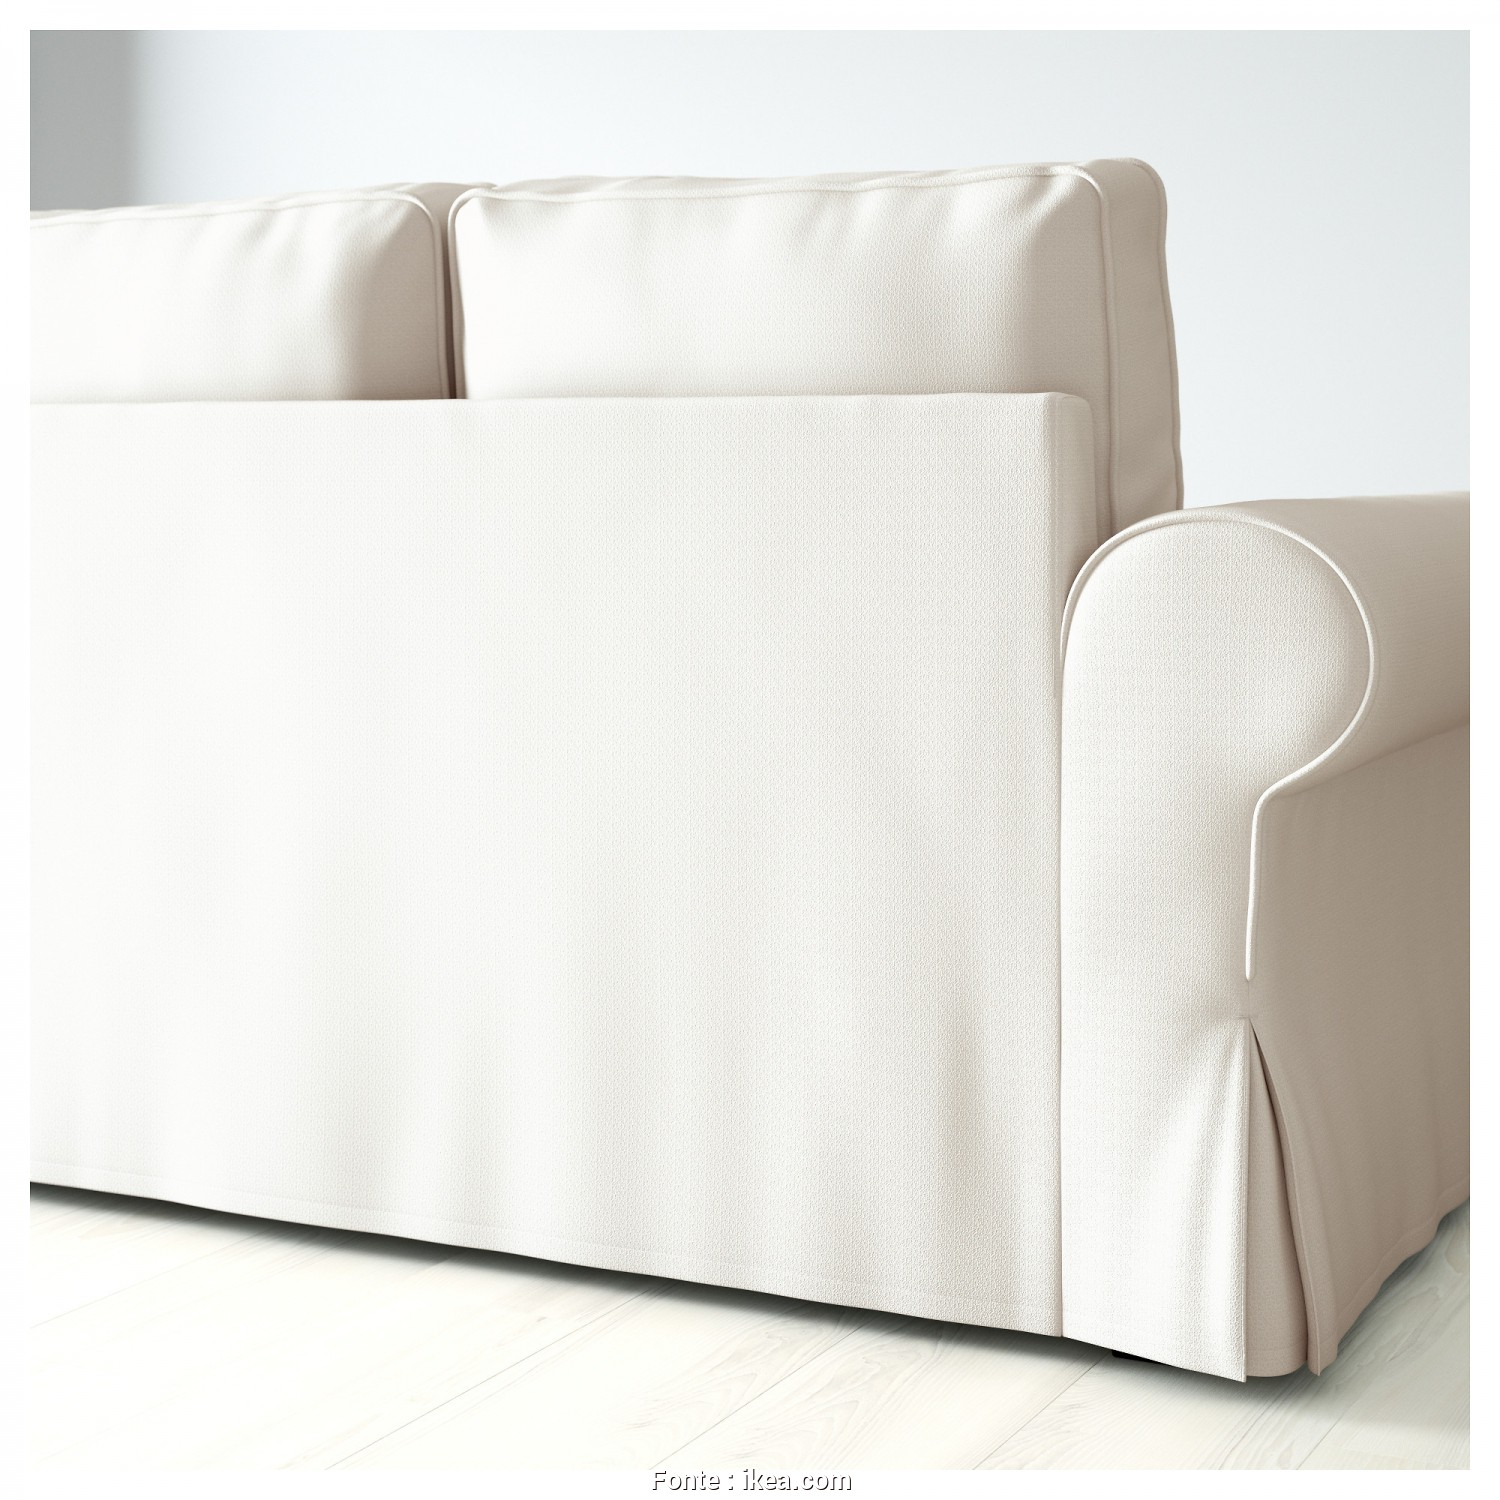 Backabro Ikea España, Bello BACKABRO Two-Seat Sofa-Bed Hylte White